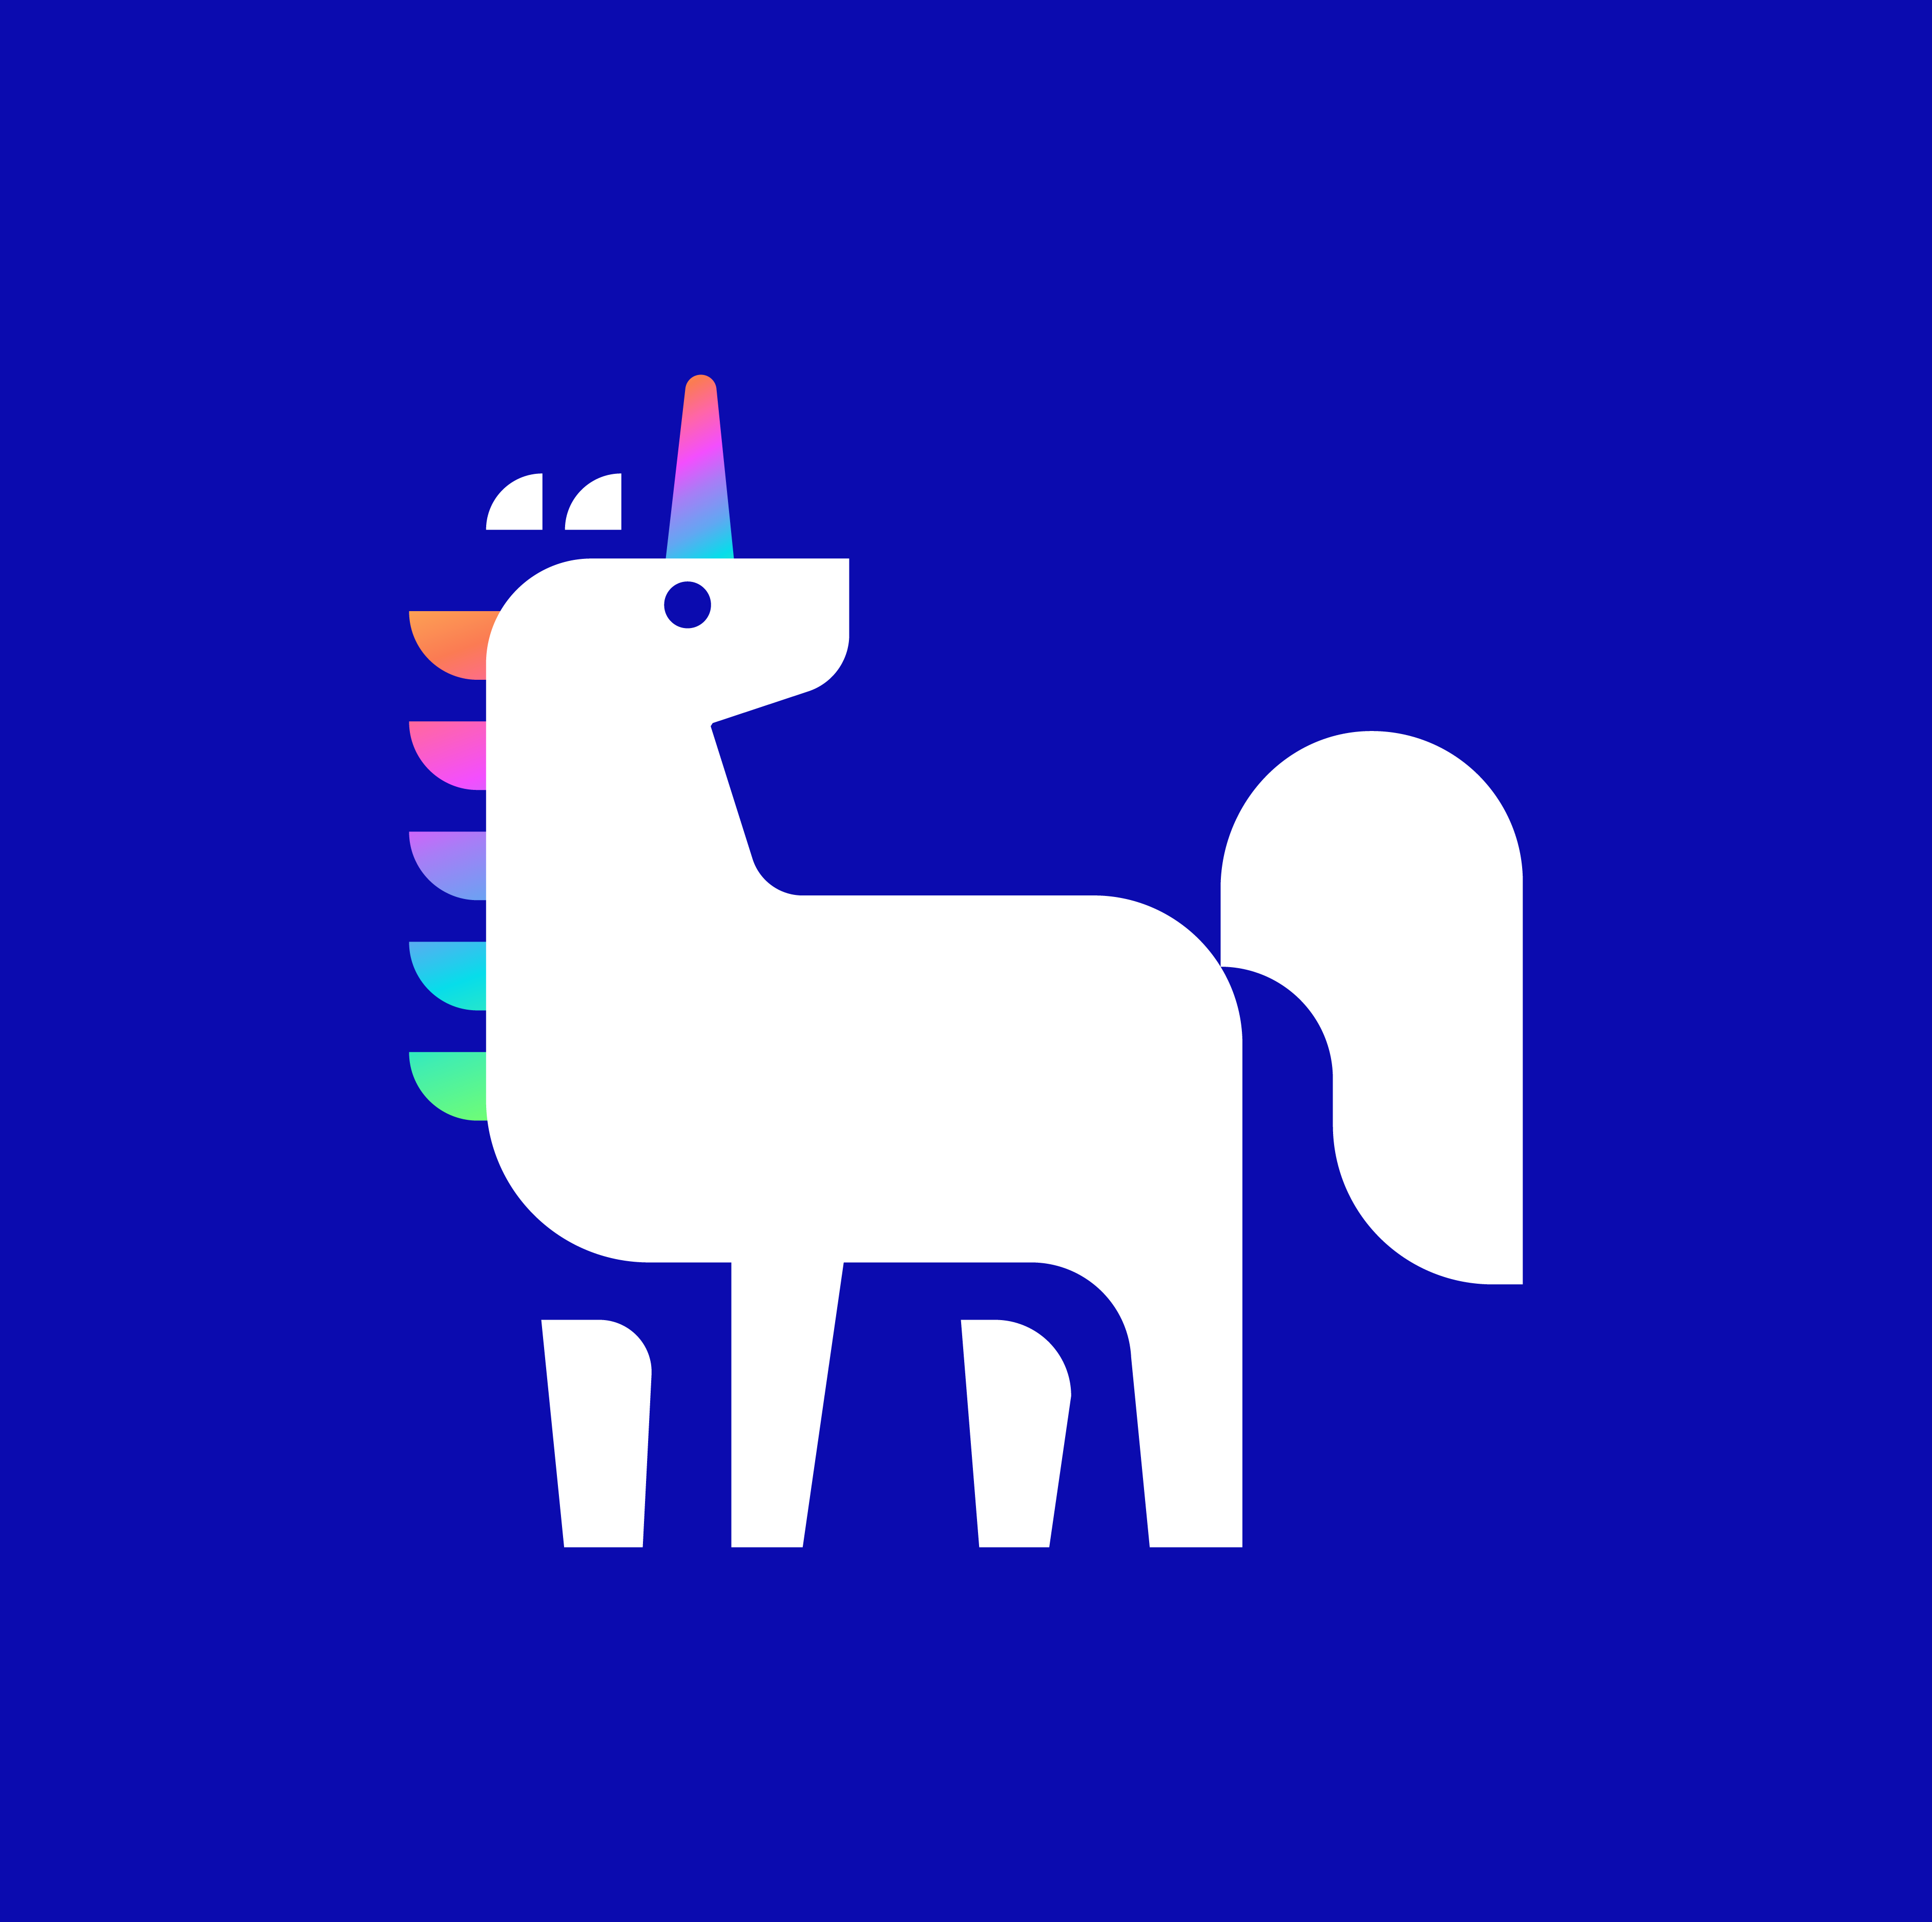 Unicorn logo design by logo designer logorilla for your inspiration and for the worlds largest logo competition